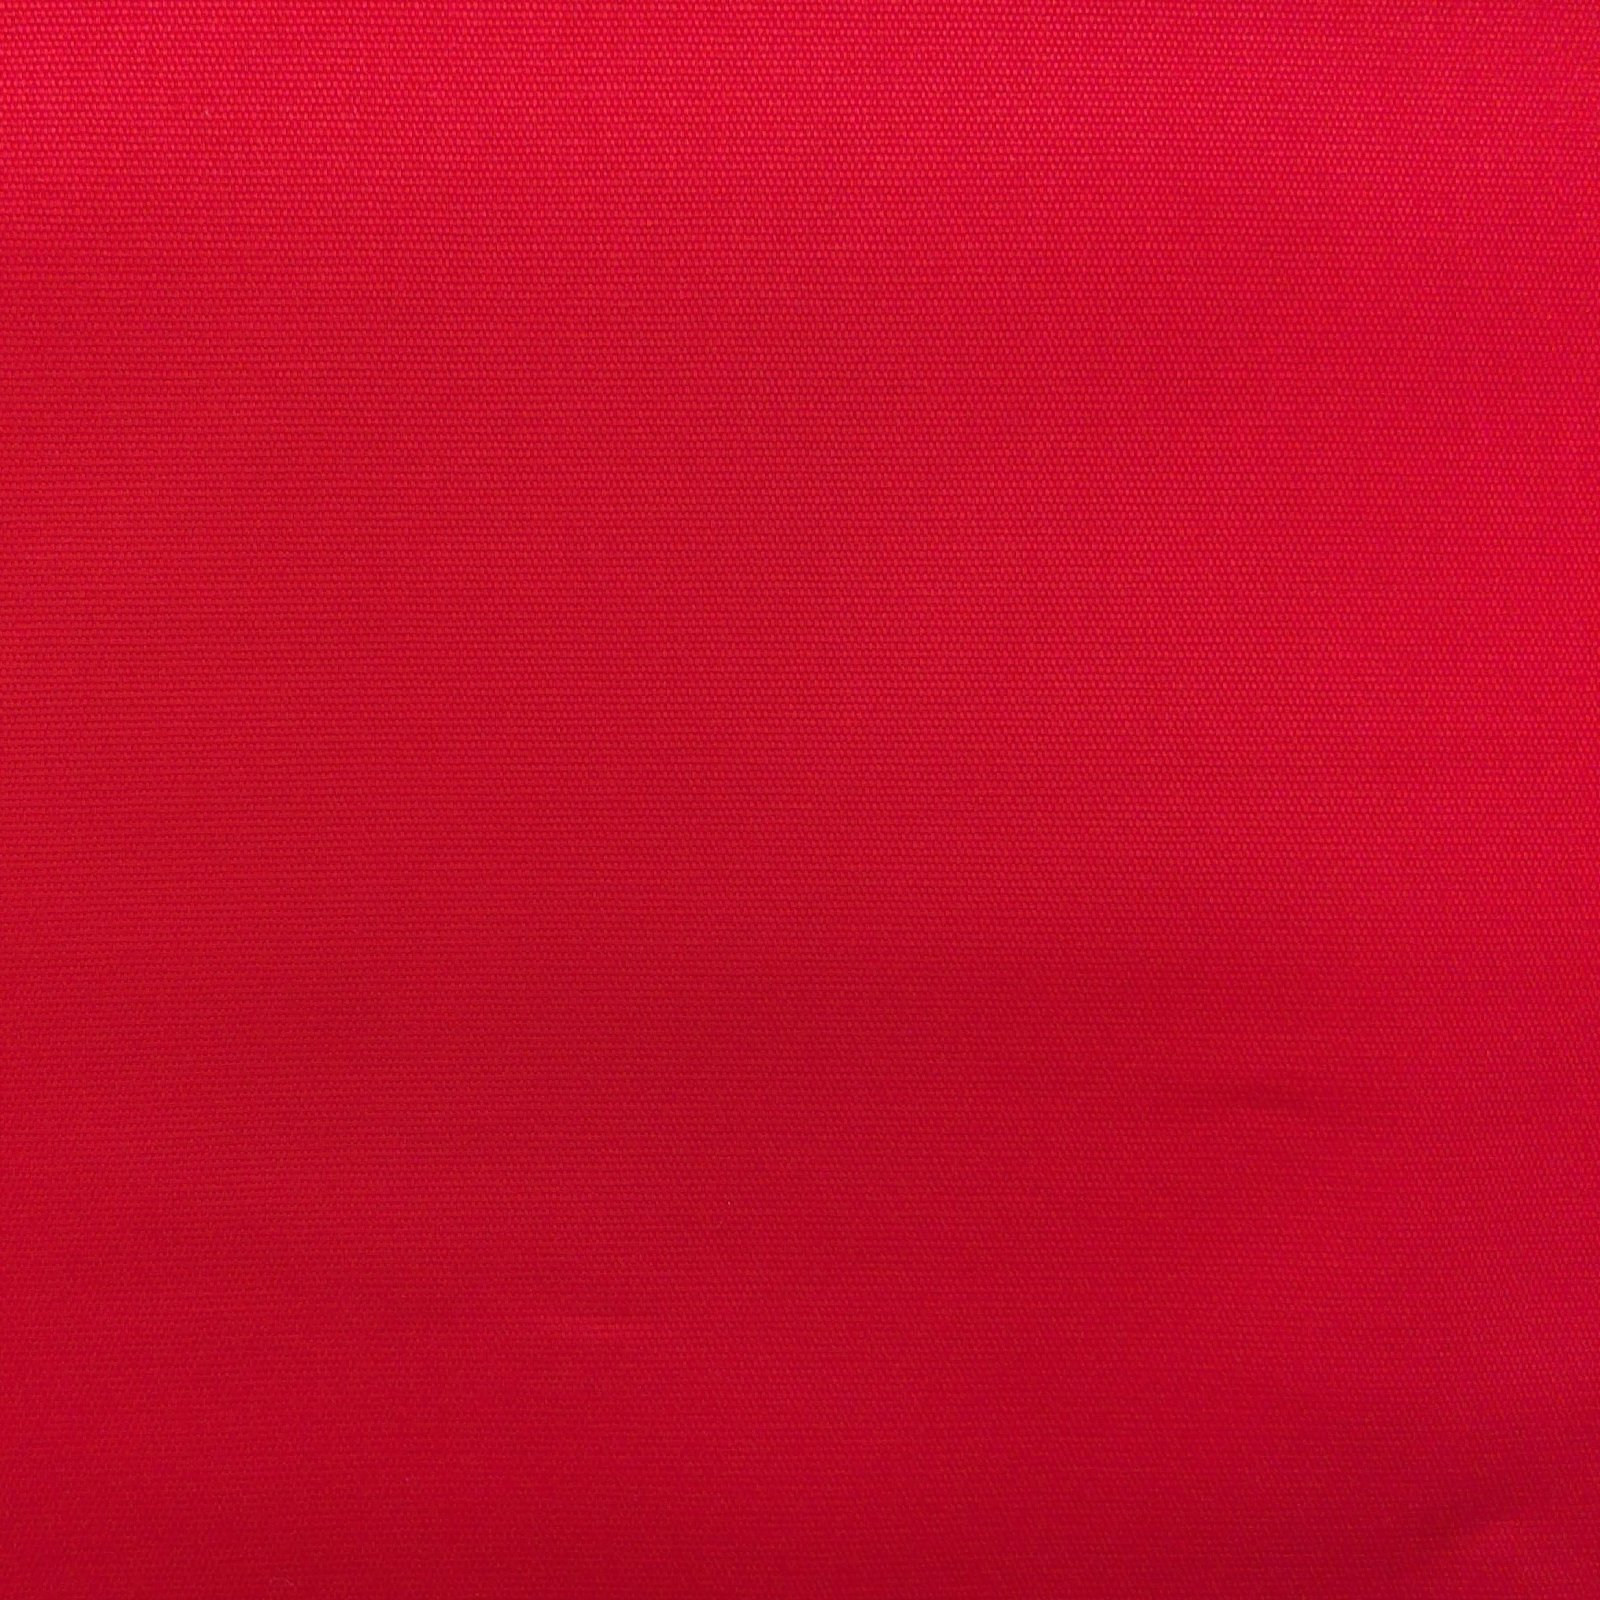 Canvas Solid 100% Cotton, Red